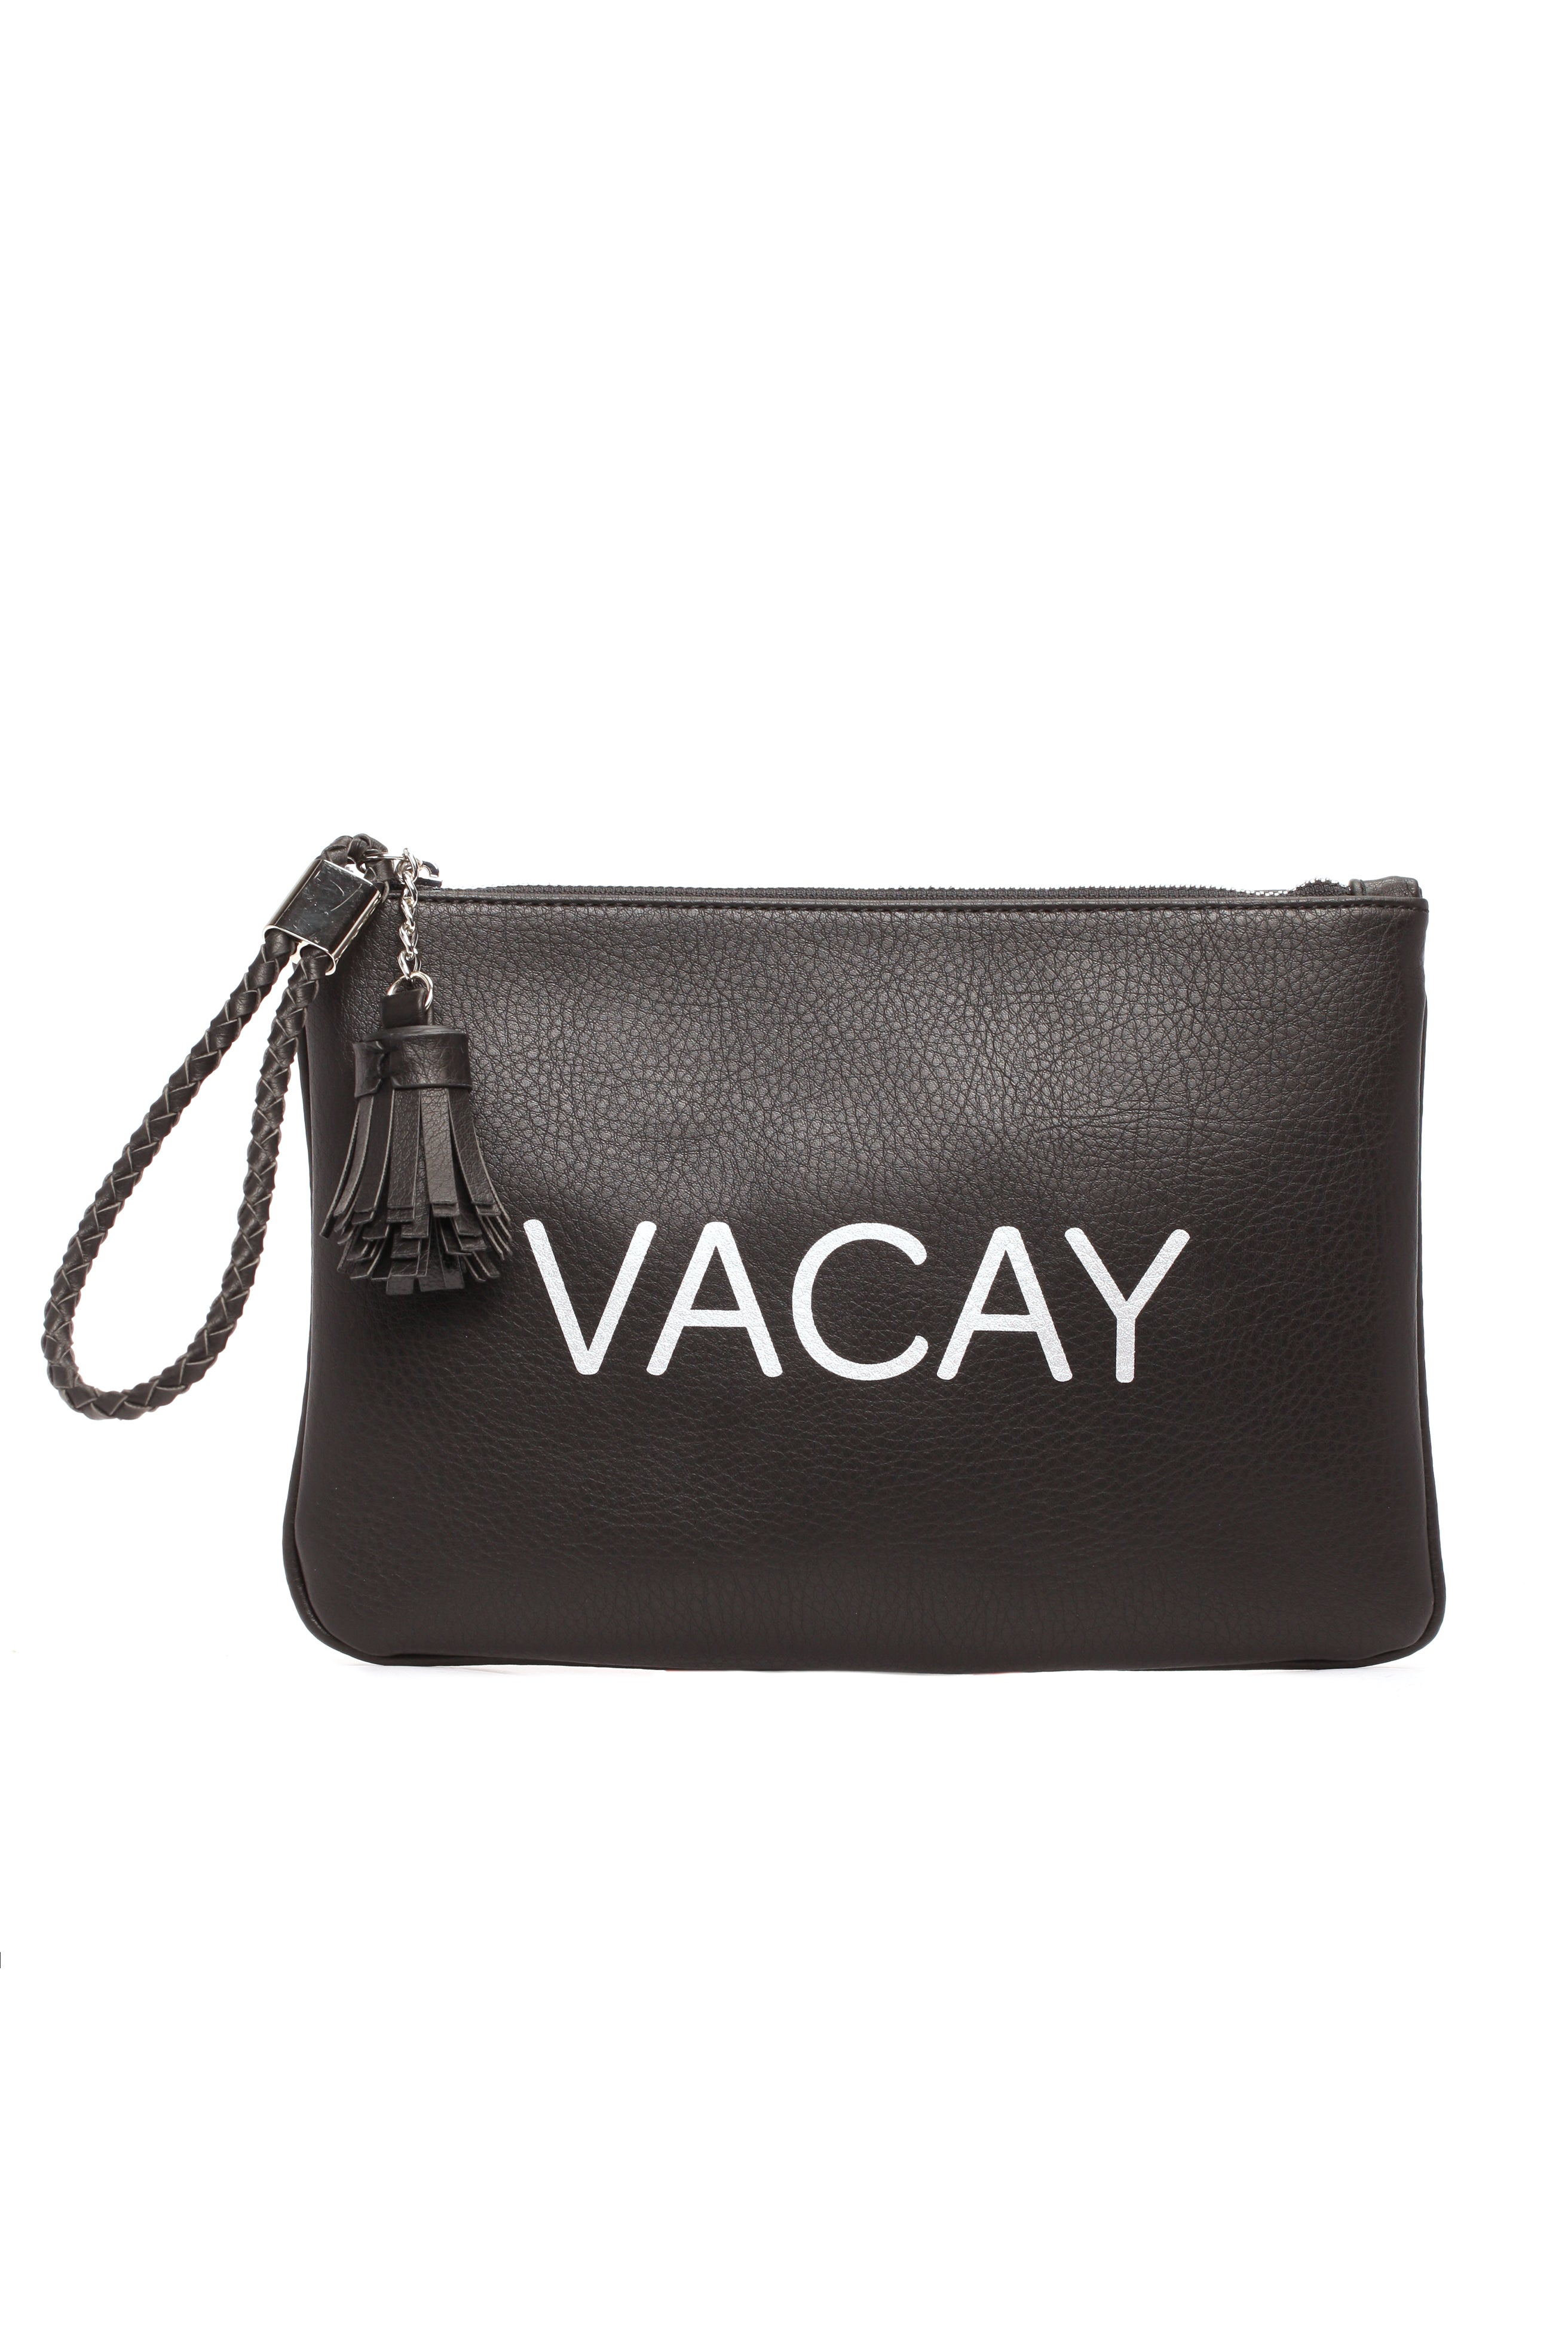 f8355843e304 https://www.fashionnova.com/products/taking-my-vacay-bag-black ...